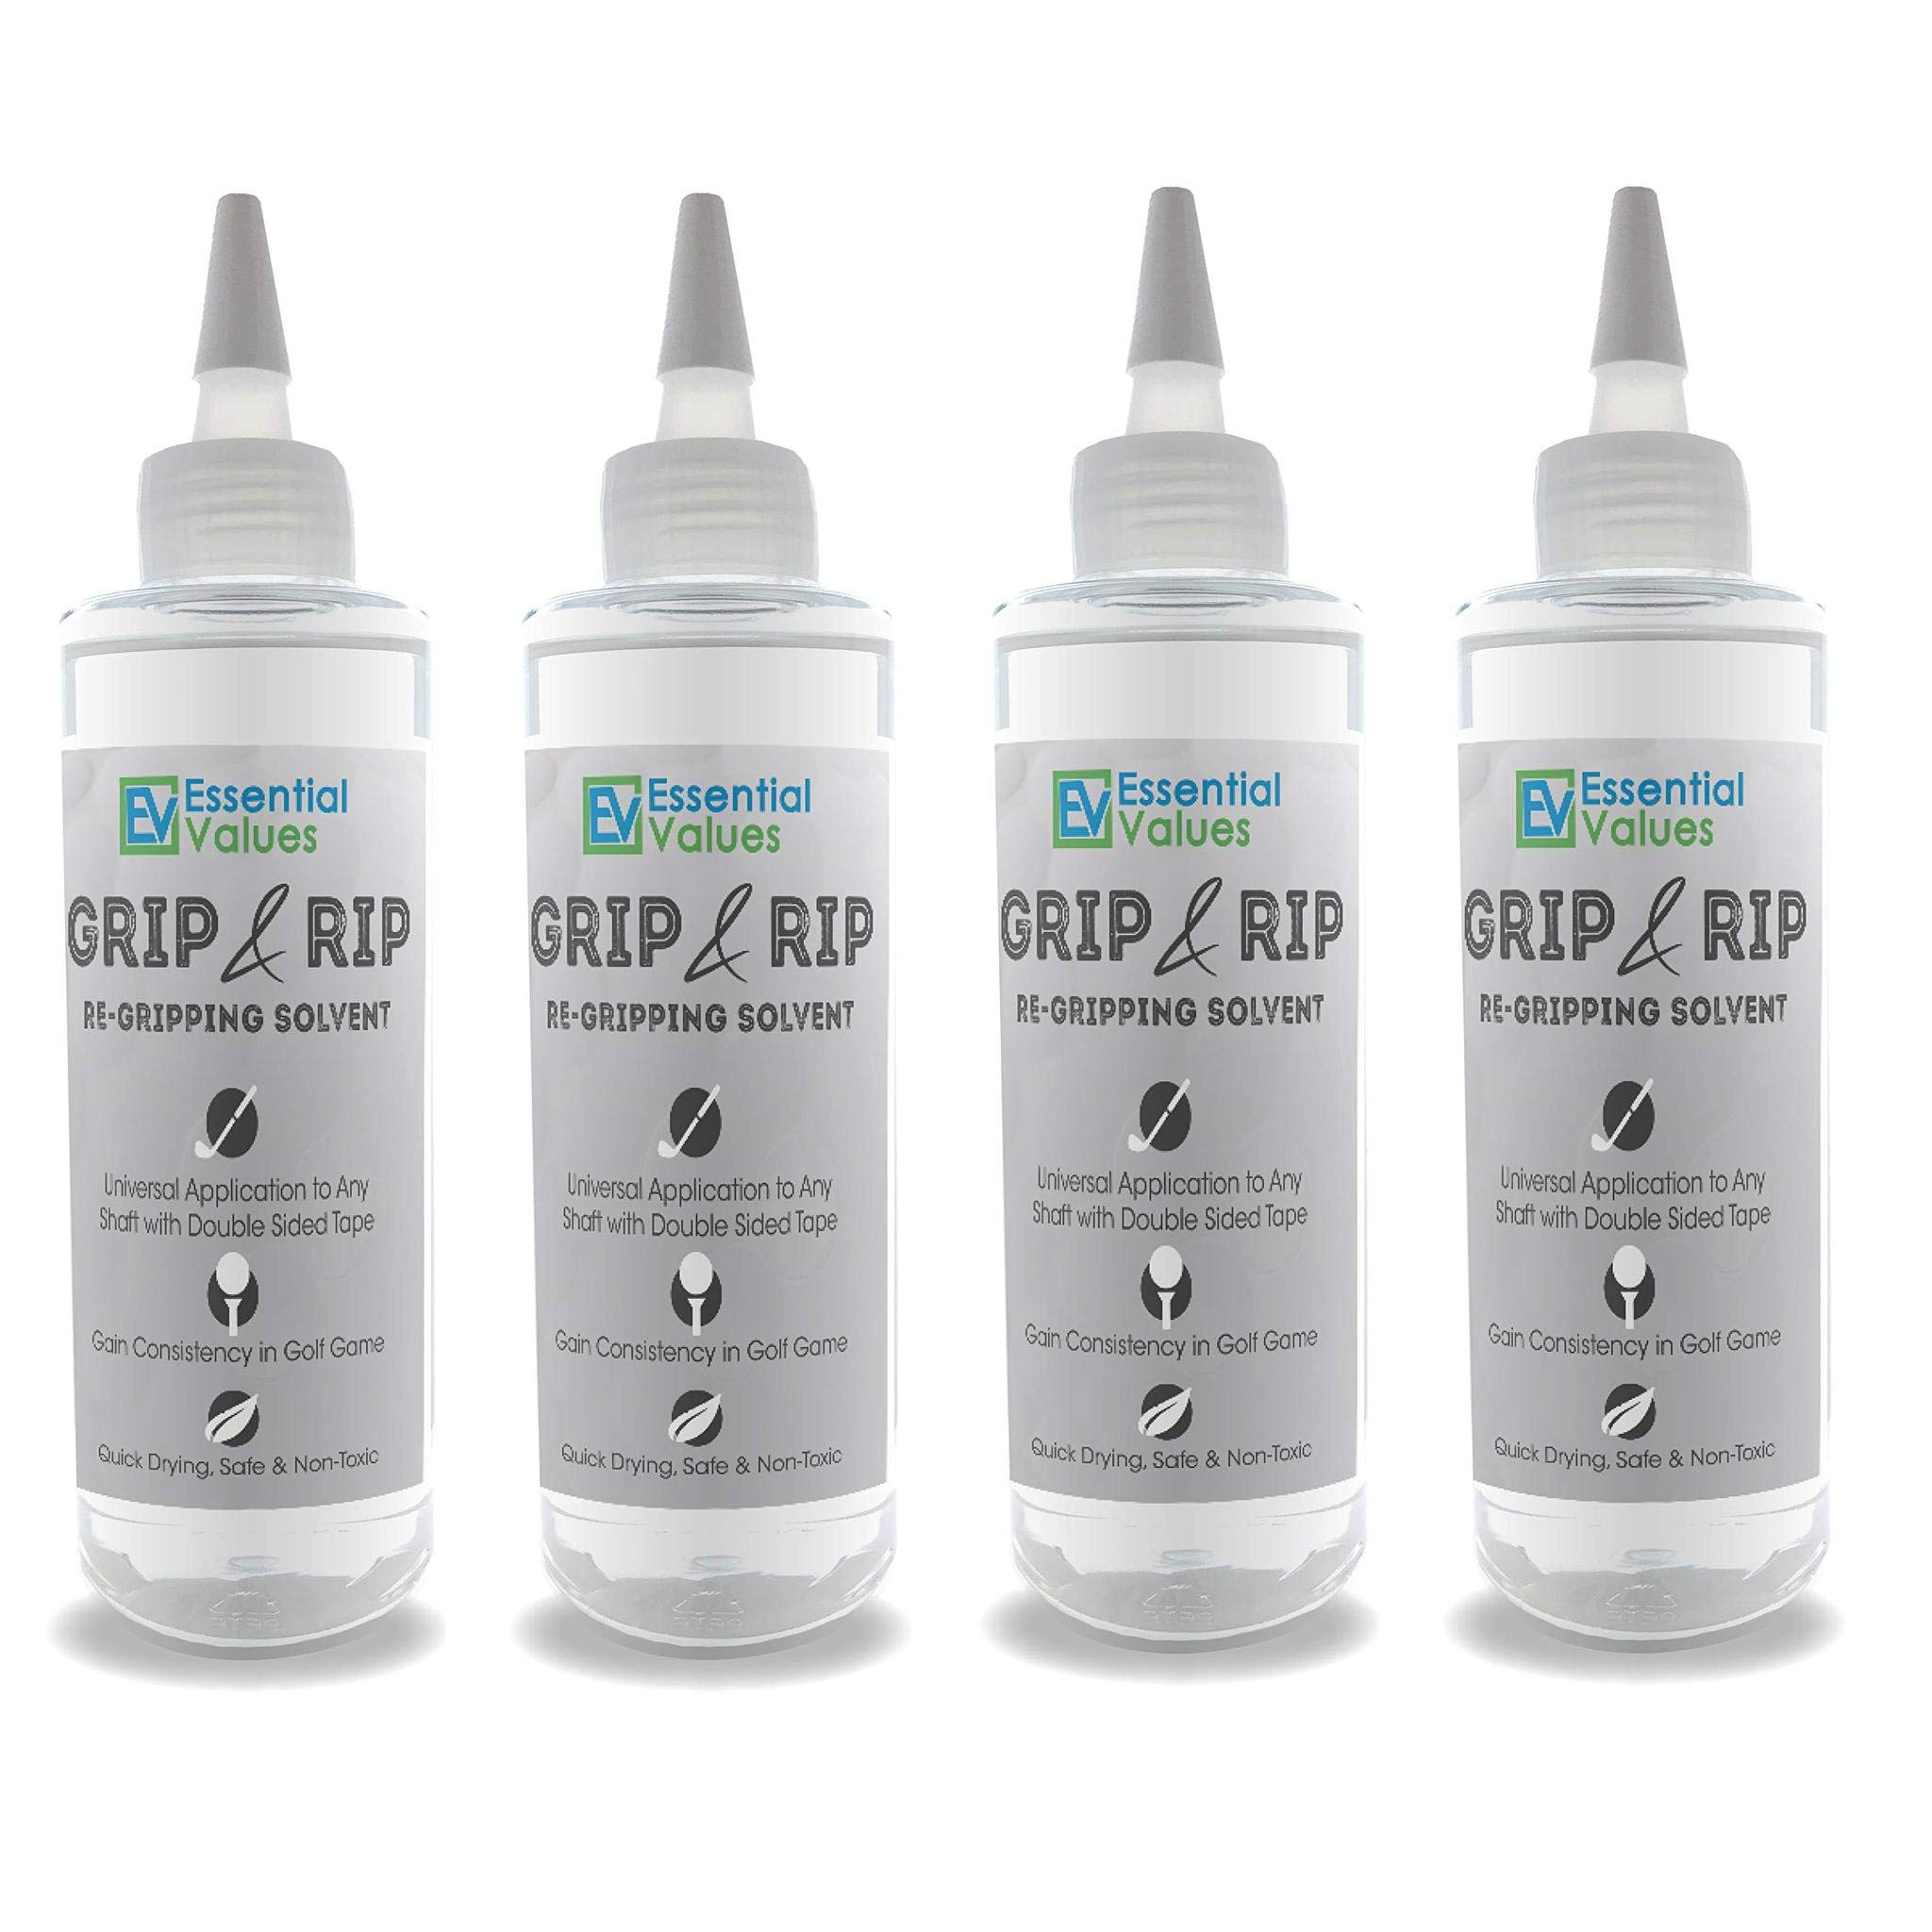 Essential Values 4 Pack Golf Regripping Solvent (8 Fl Oz), Double The Solution Compared to Others - Excellent for Quick & Easy Regripping of Golf Clubs - Made in USA by Essential Values